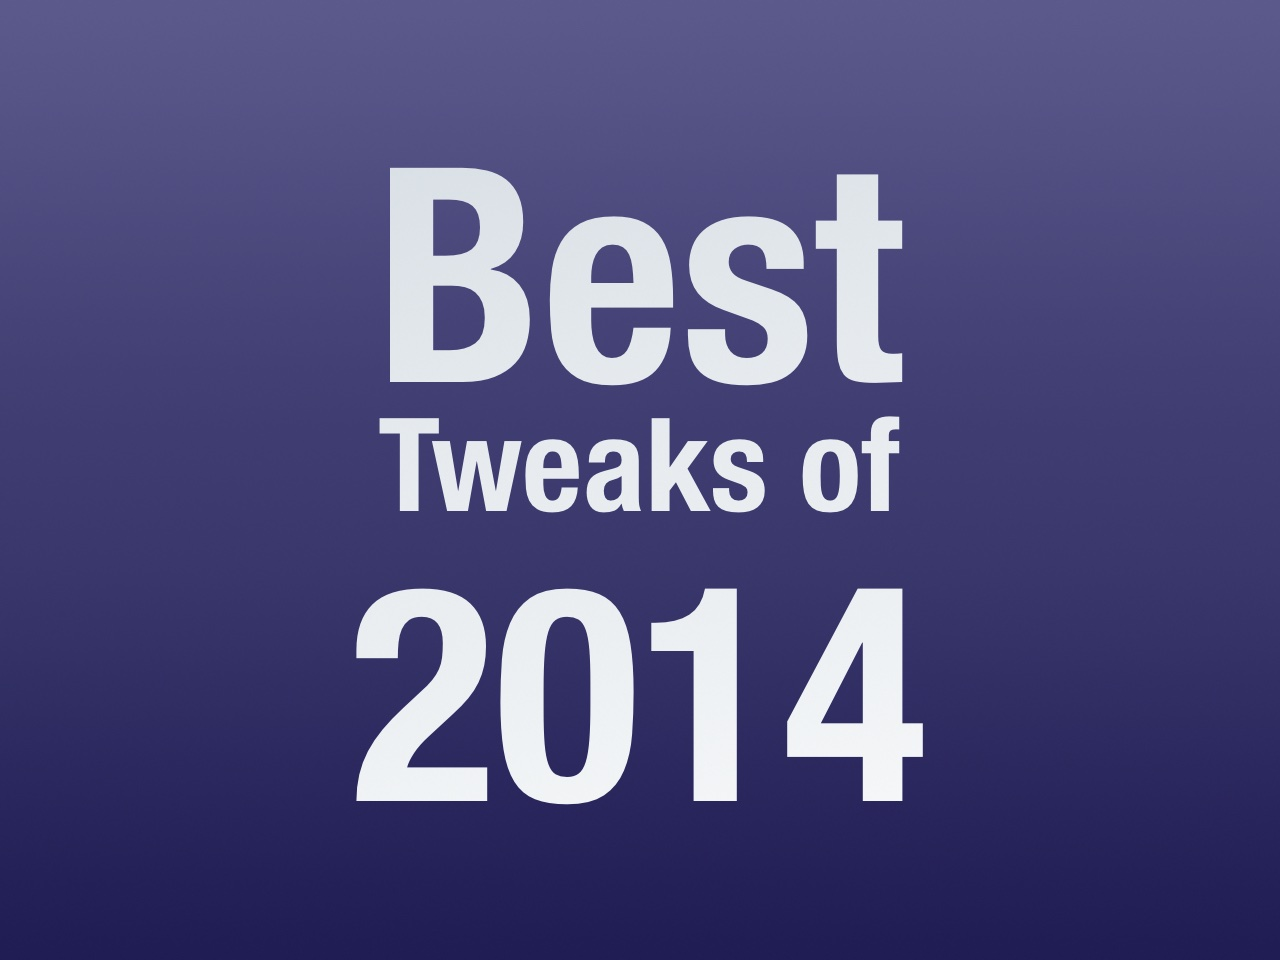 Best tweaks of 2014